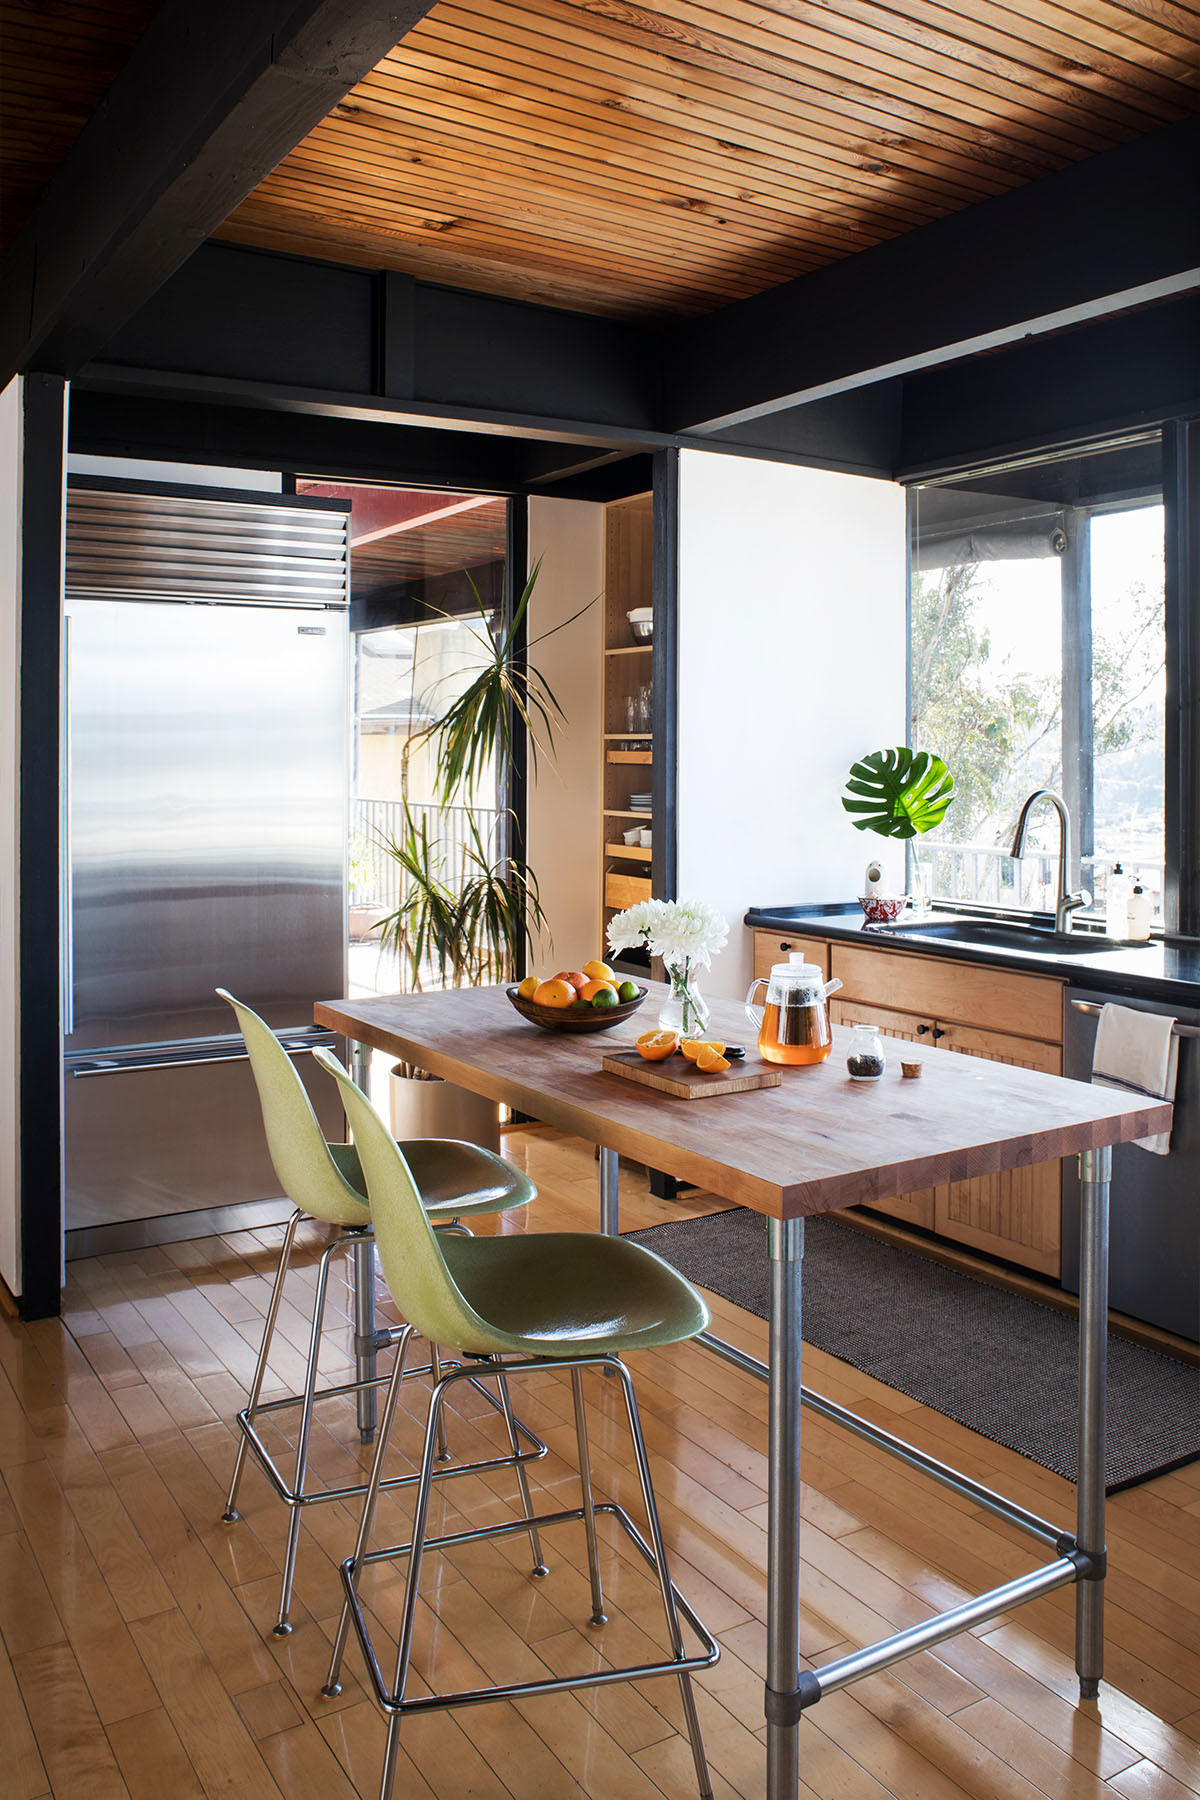 The duo embrace a clean-lined, mid-century aesthetic in the kitchen space, complete with Modernica's fiberglass counter stools and treetop views. John Boos Kitchen Island | Overstock Runner | Sub-Zero, Gaggenau Appliances | Miles Gracey Chopping Board.